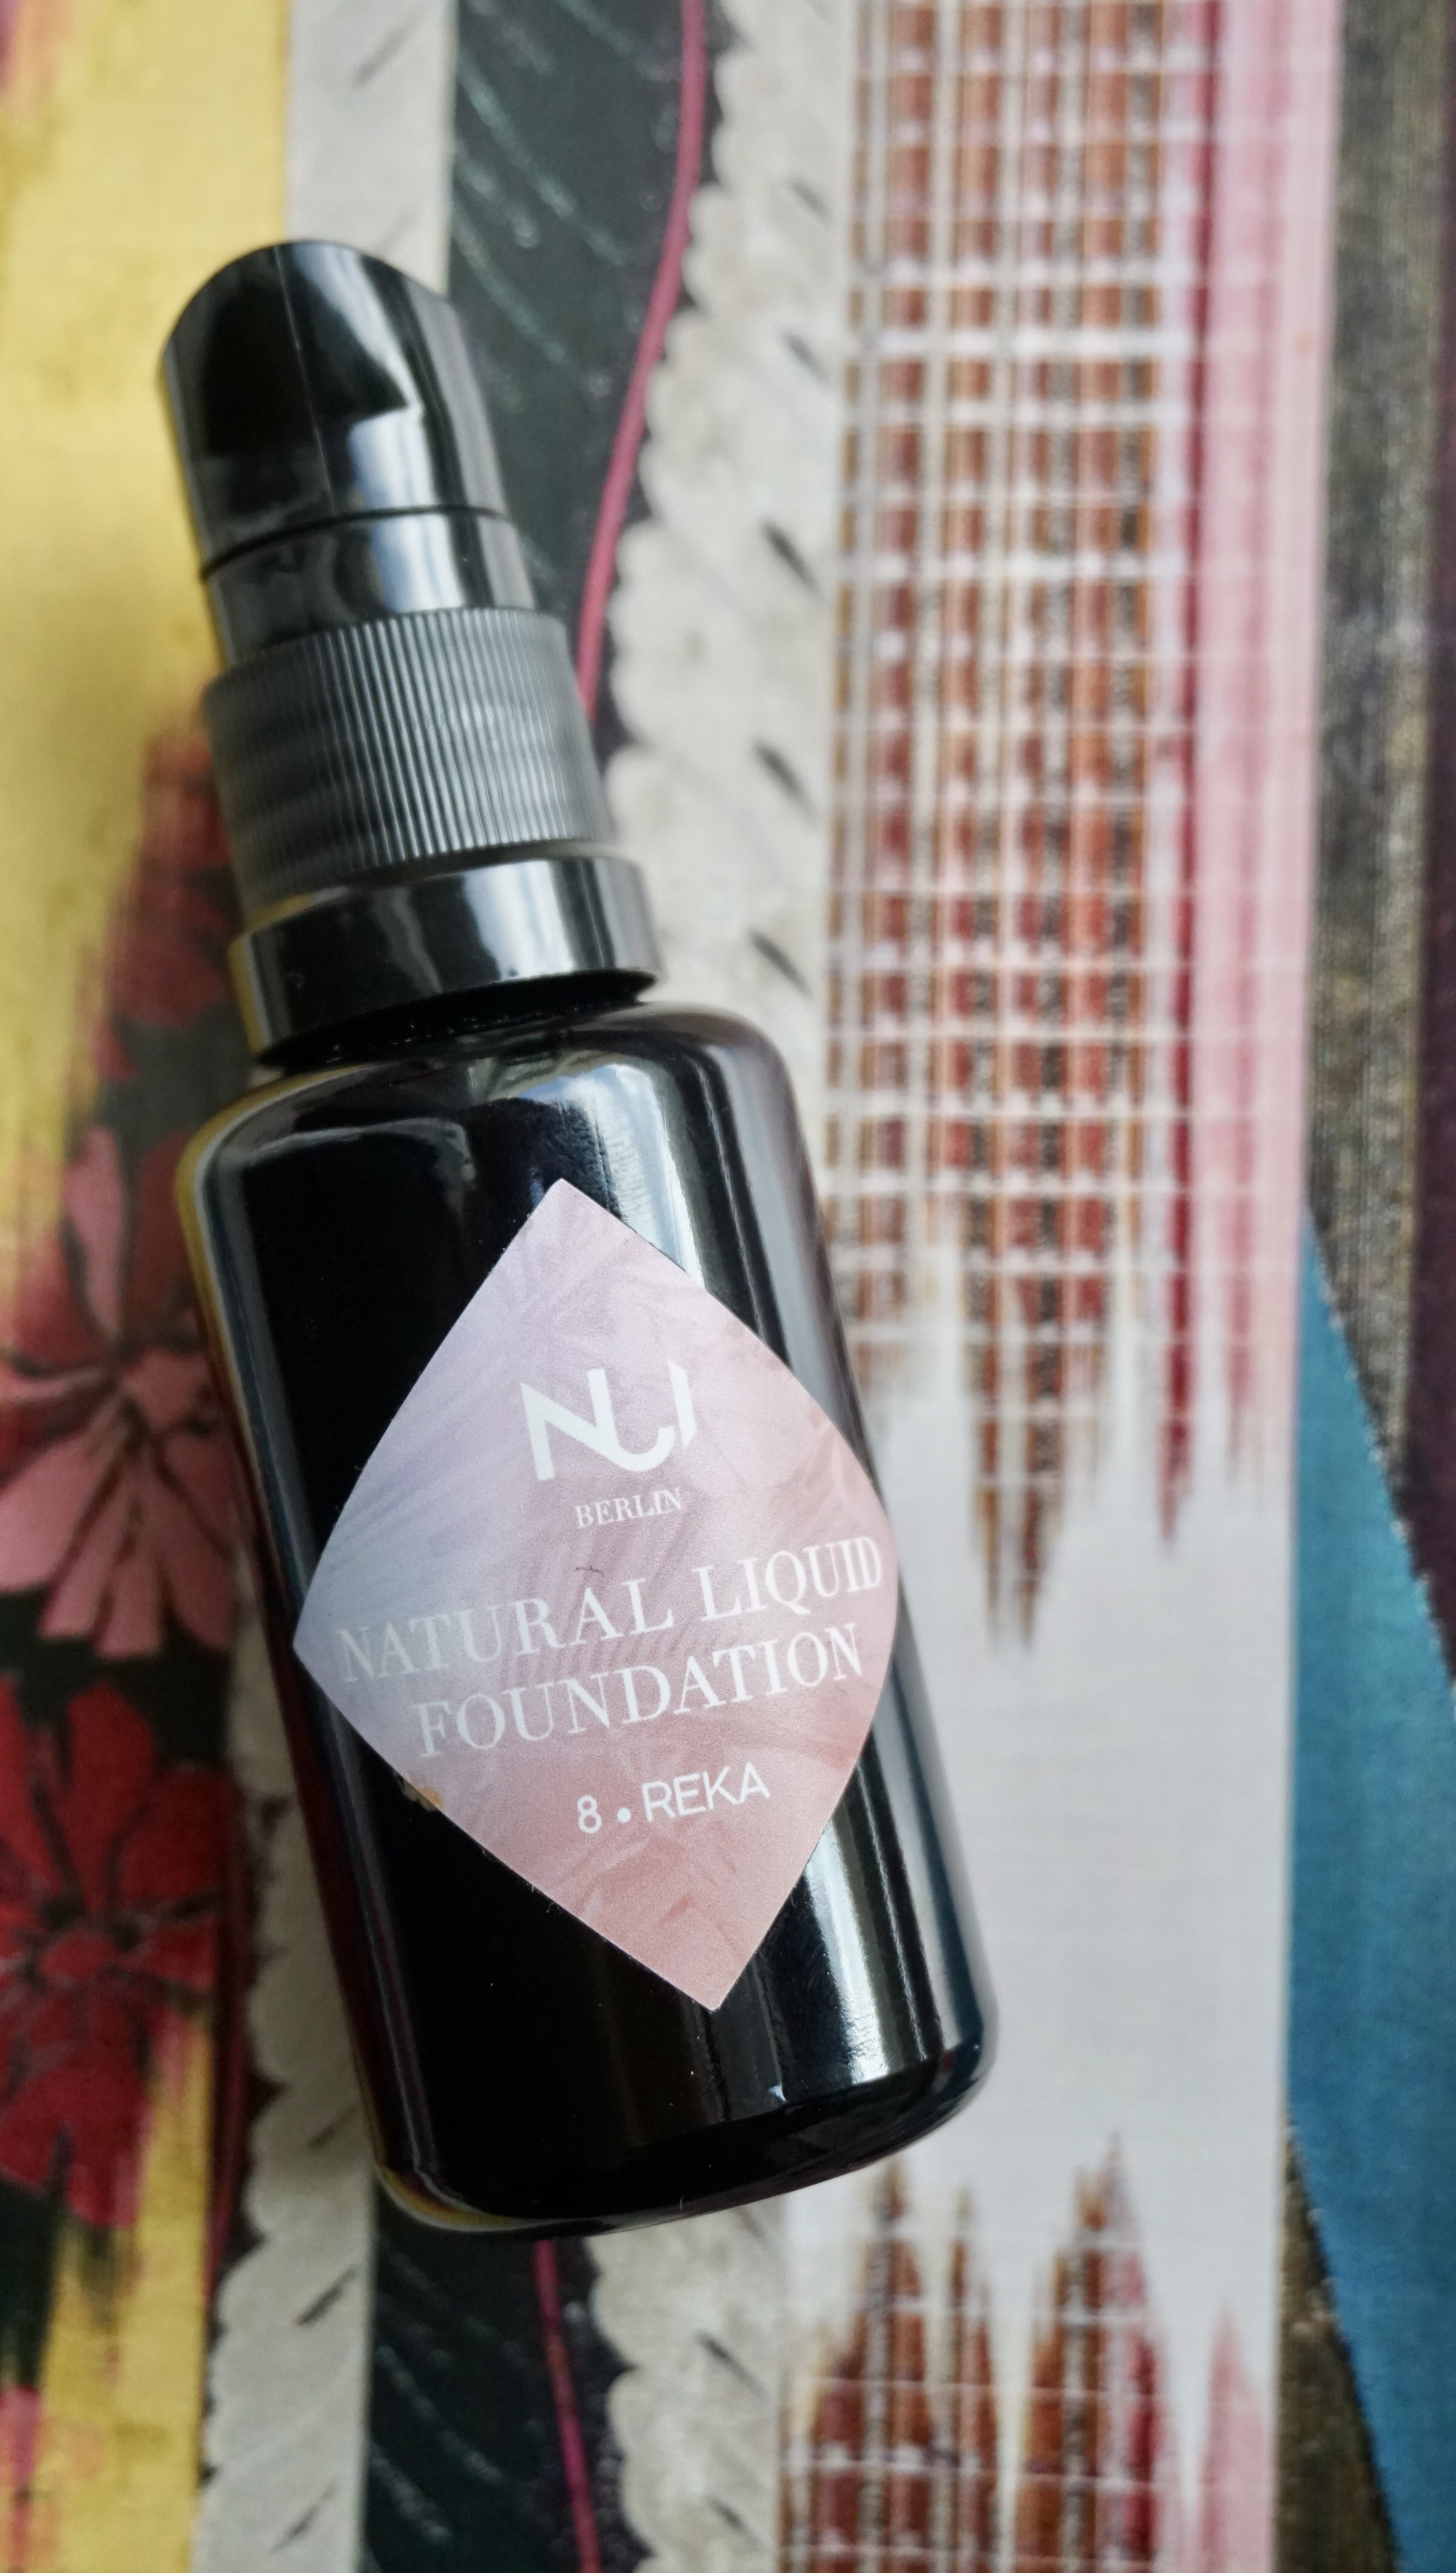 2. NUI Cosmetics Natural Liquid Foundation - Another tried and tested foundation is this black bottled beauty from Berlin's relatively new brand- NUI. The brand's mission is to create natural and vegan products, without compromising on functionality and quality. The foundation feels very light and smells like a vanilla dessert.The ingredients are 90% certified organic vegan and gluten-free.Price: € 34.90